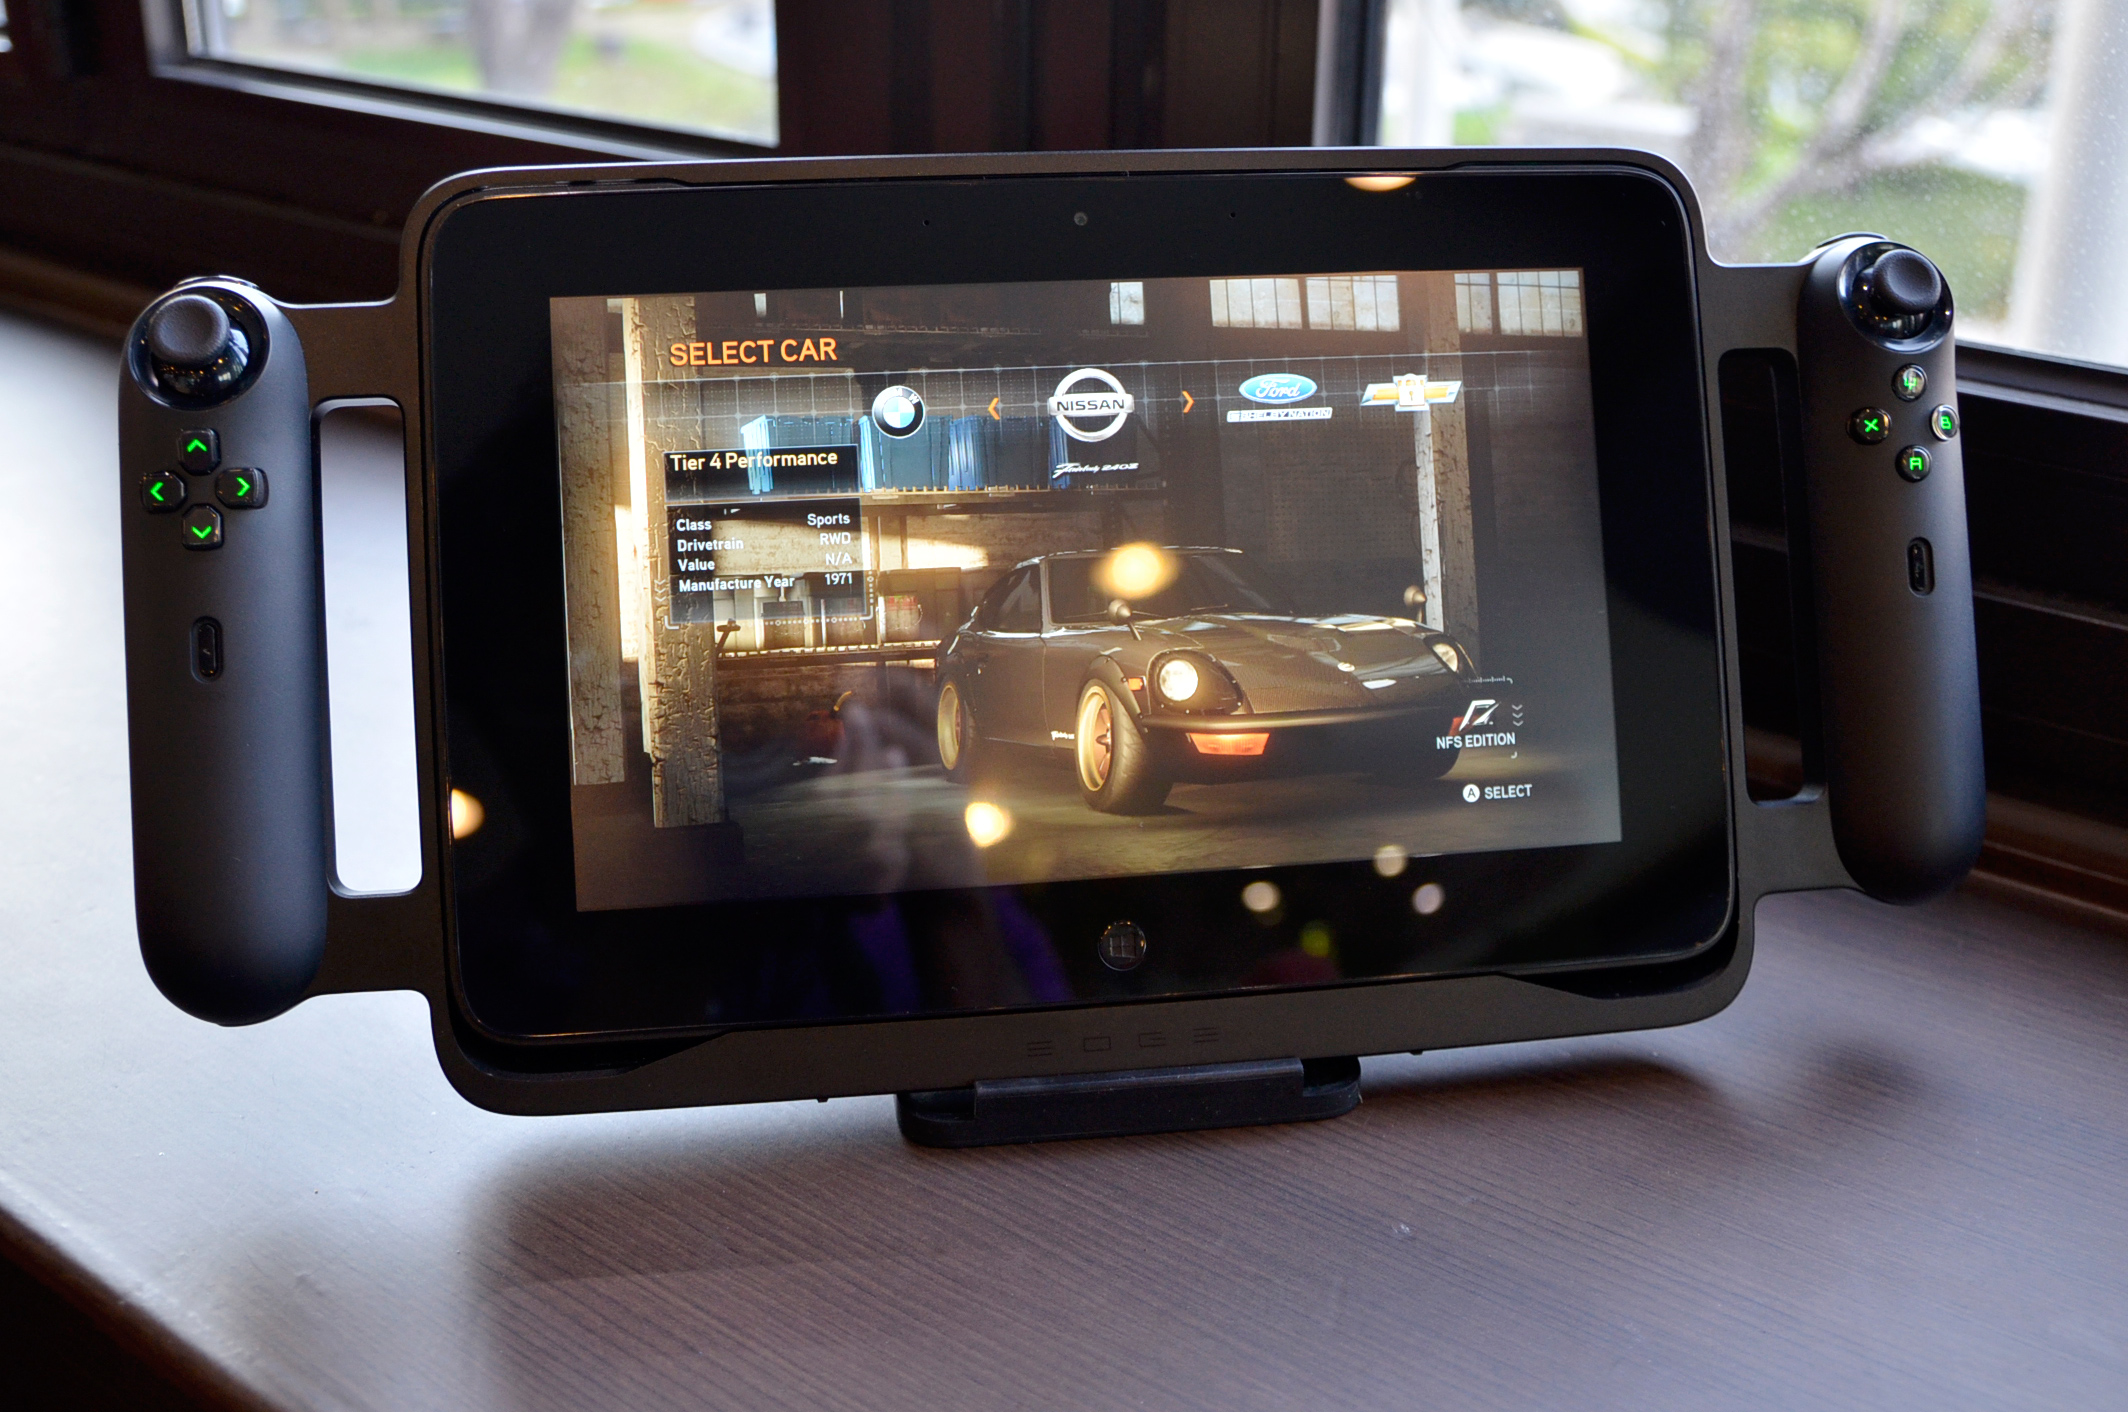 The Gamepad The Razer Edge Review